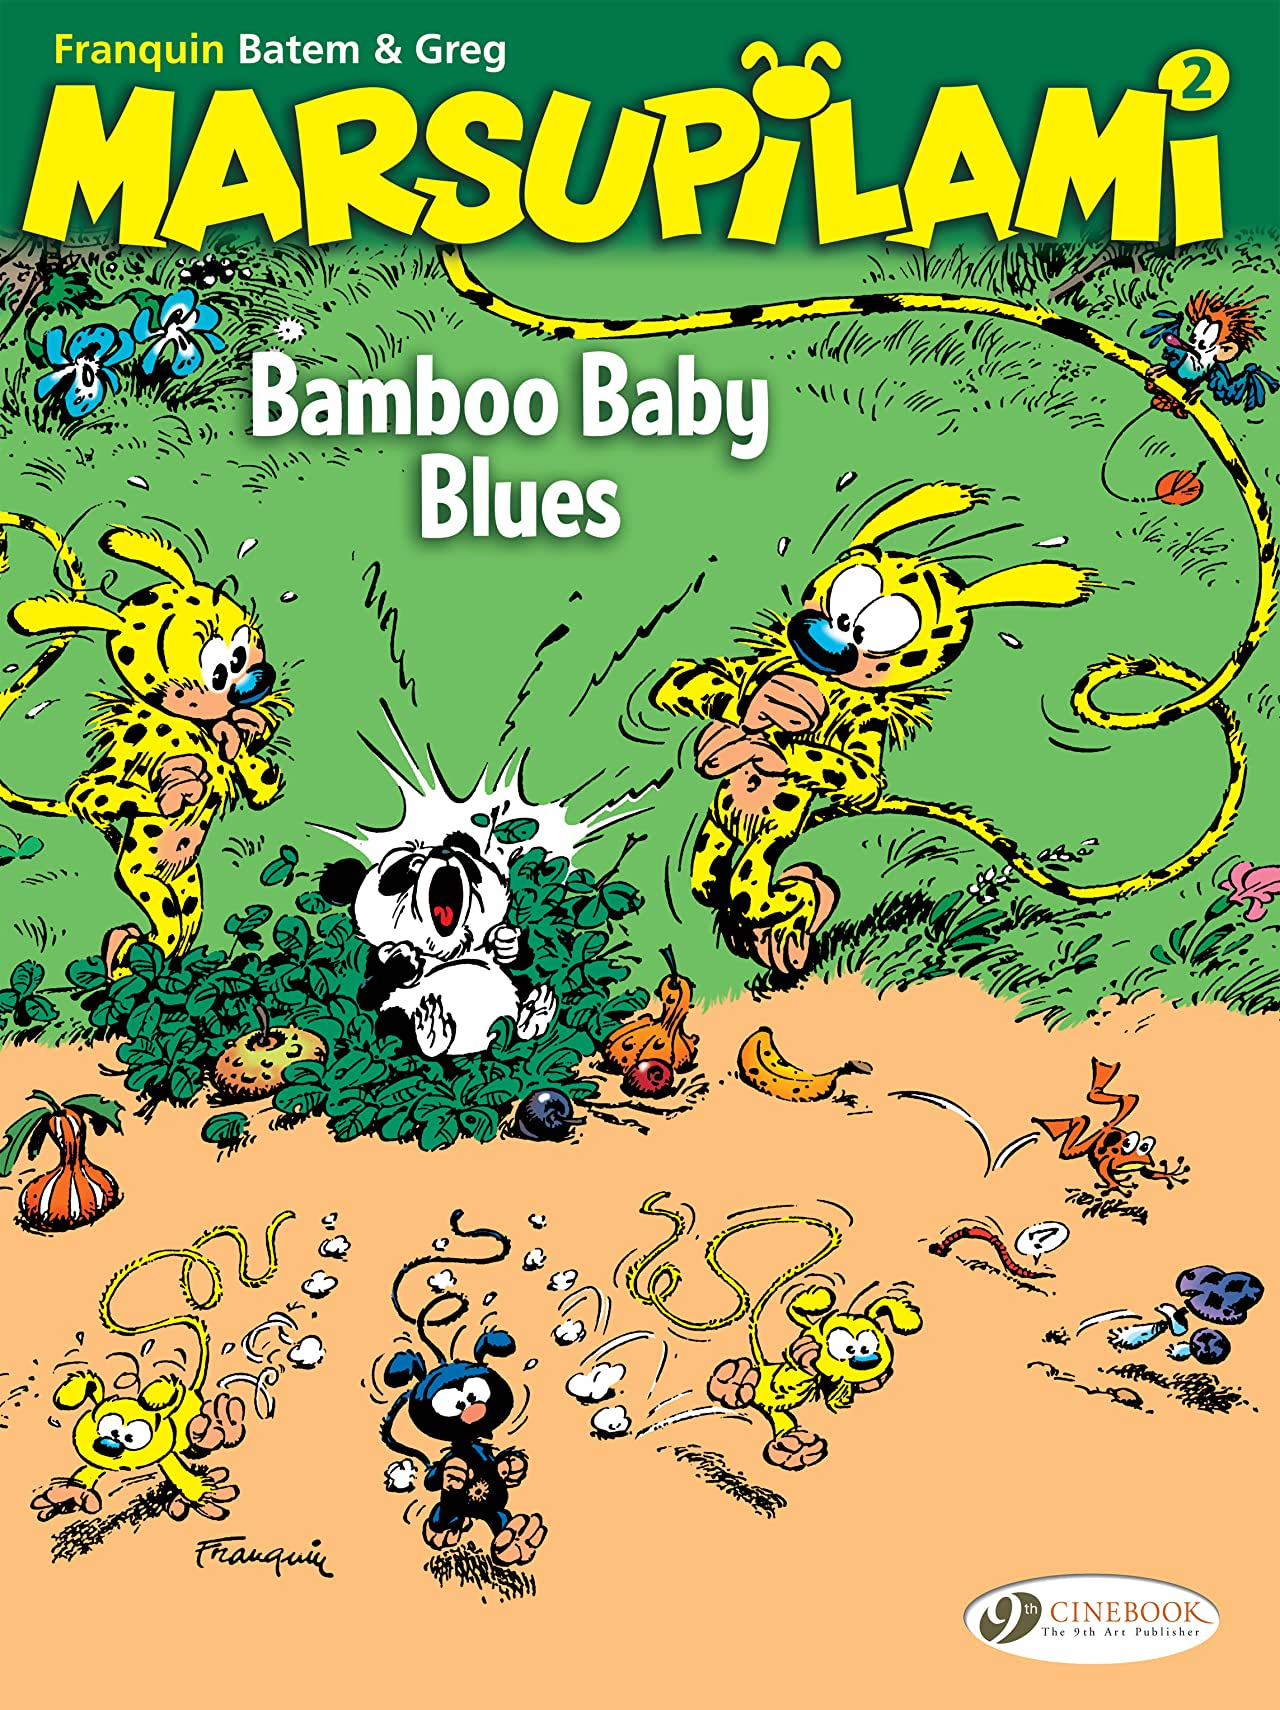 The Marsupilami Tome 2: Bamboo baby blues